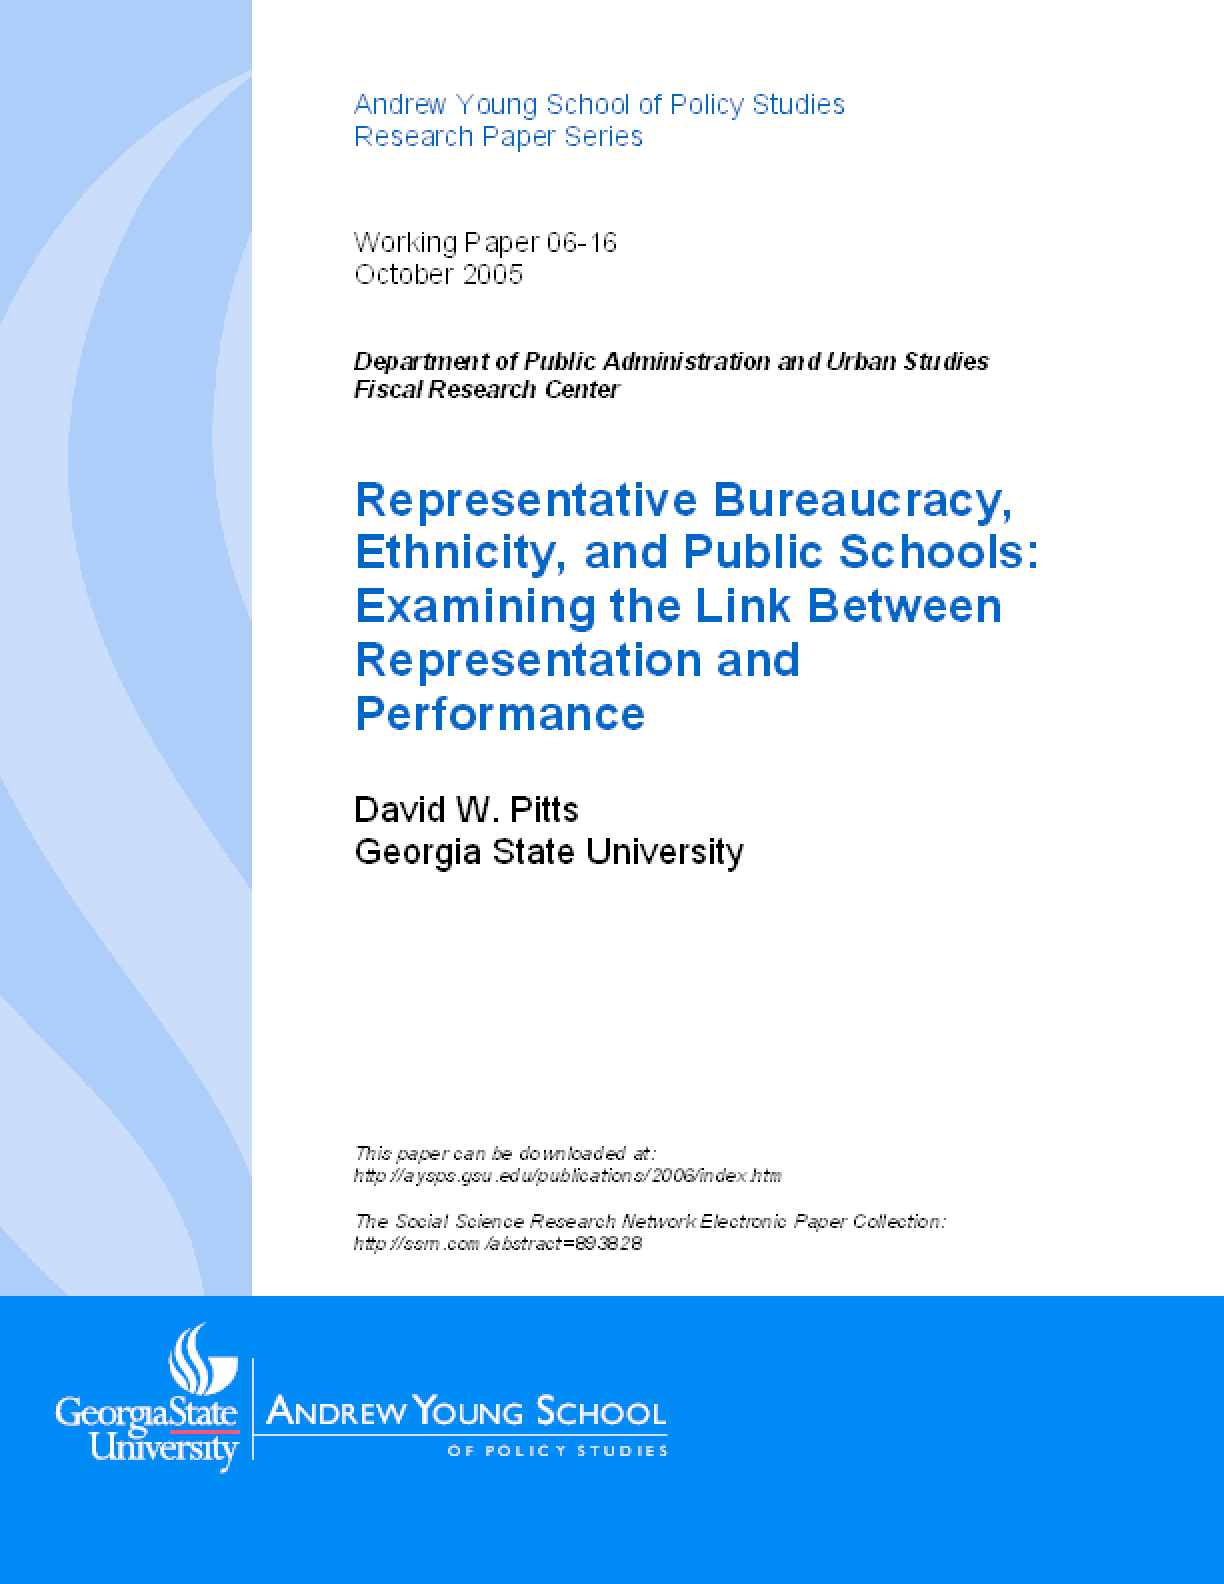 Representative Bureaucracy, Ethnicity, and Public Schools: Examining the Link Between Representation and Performance